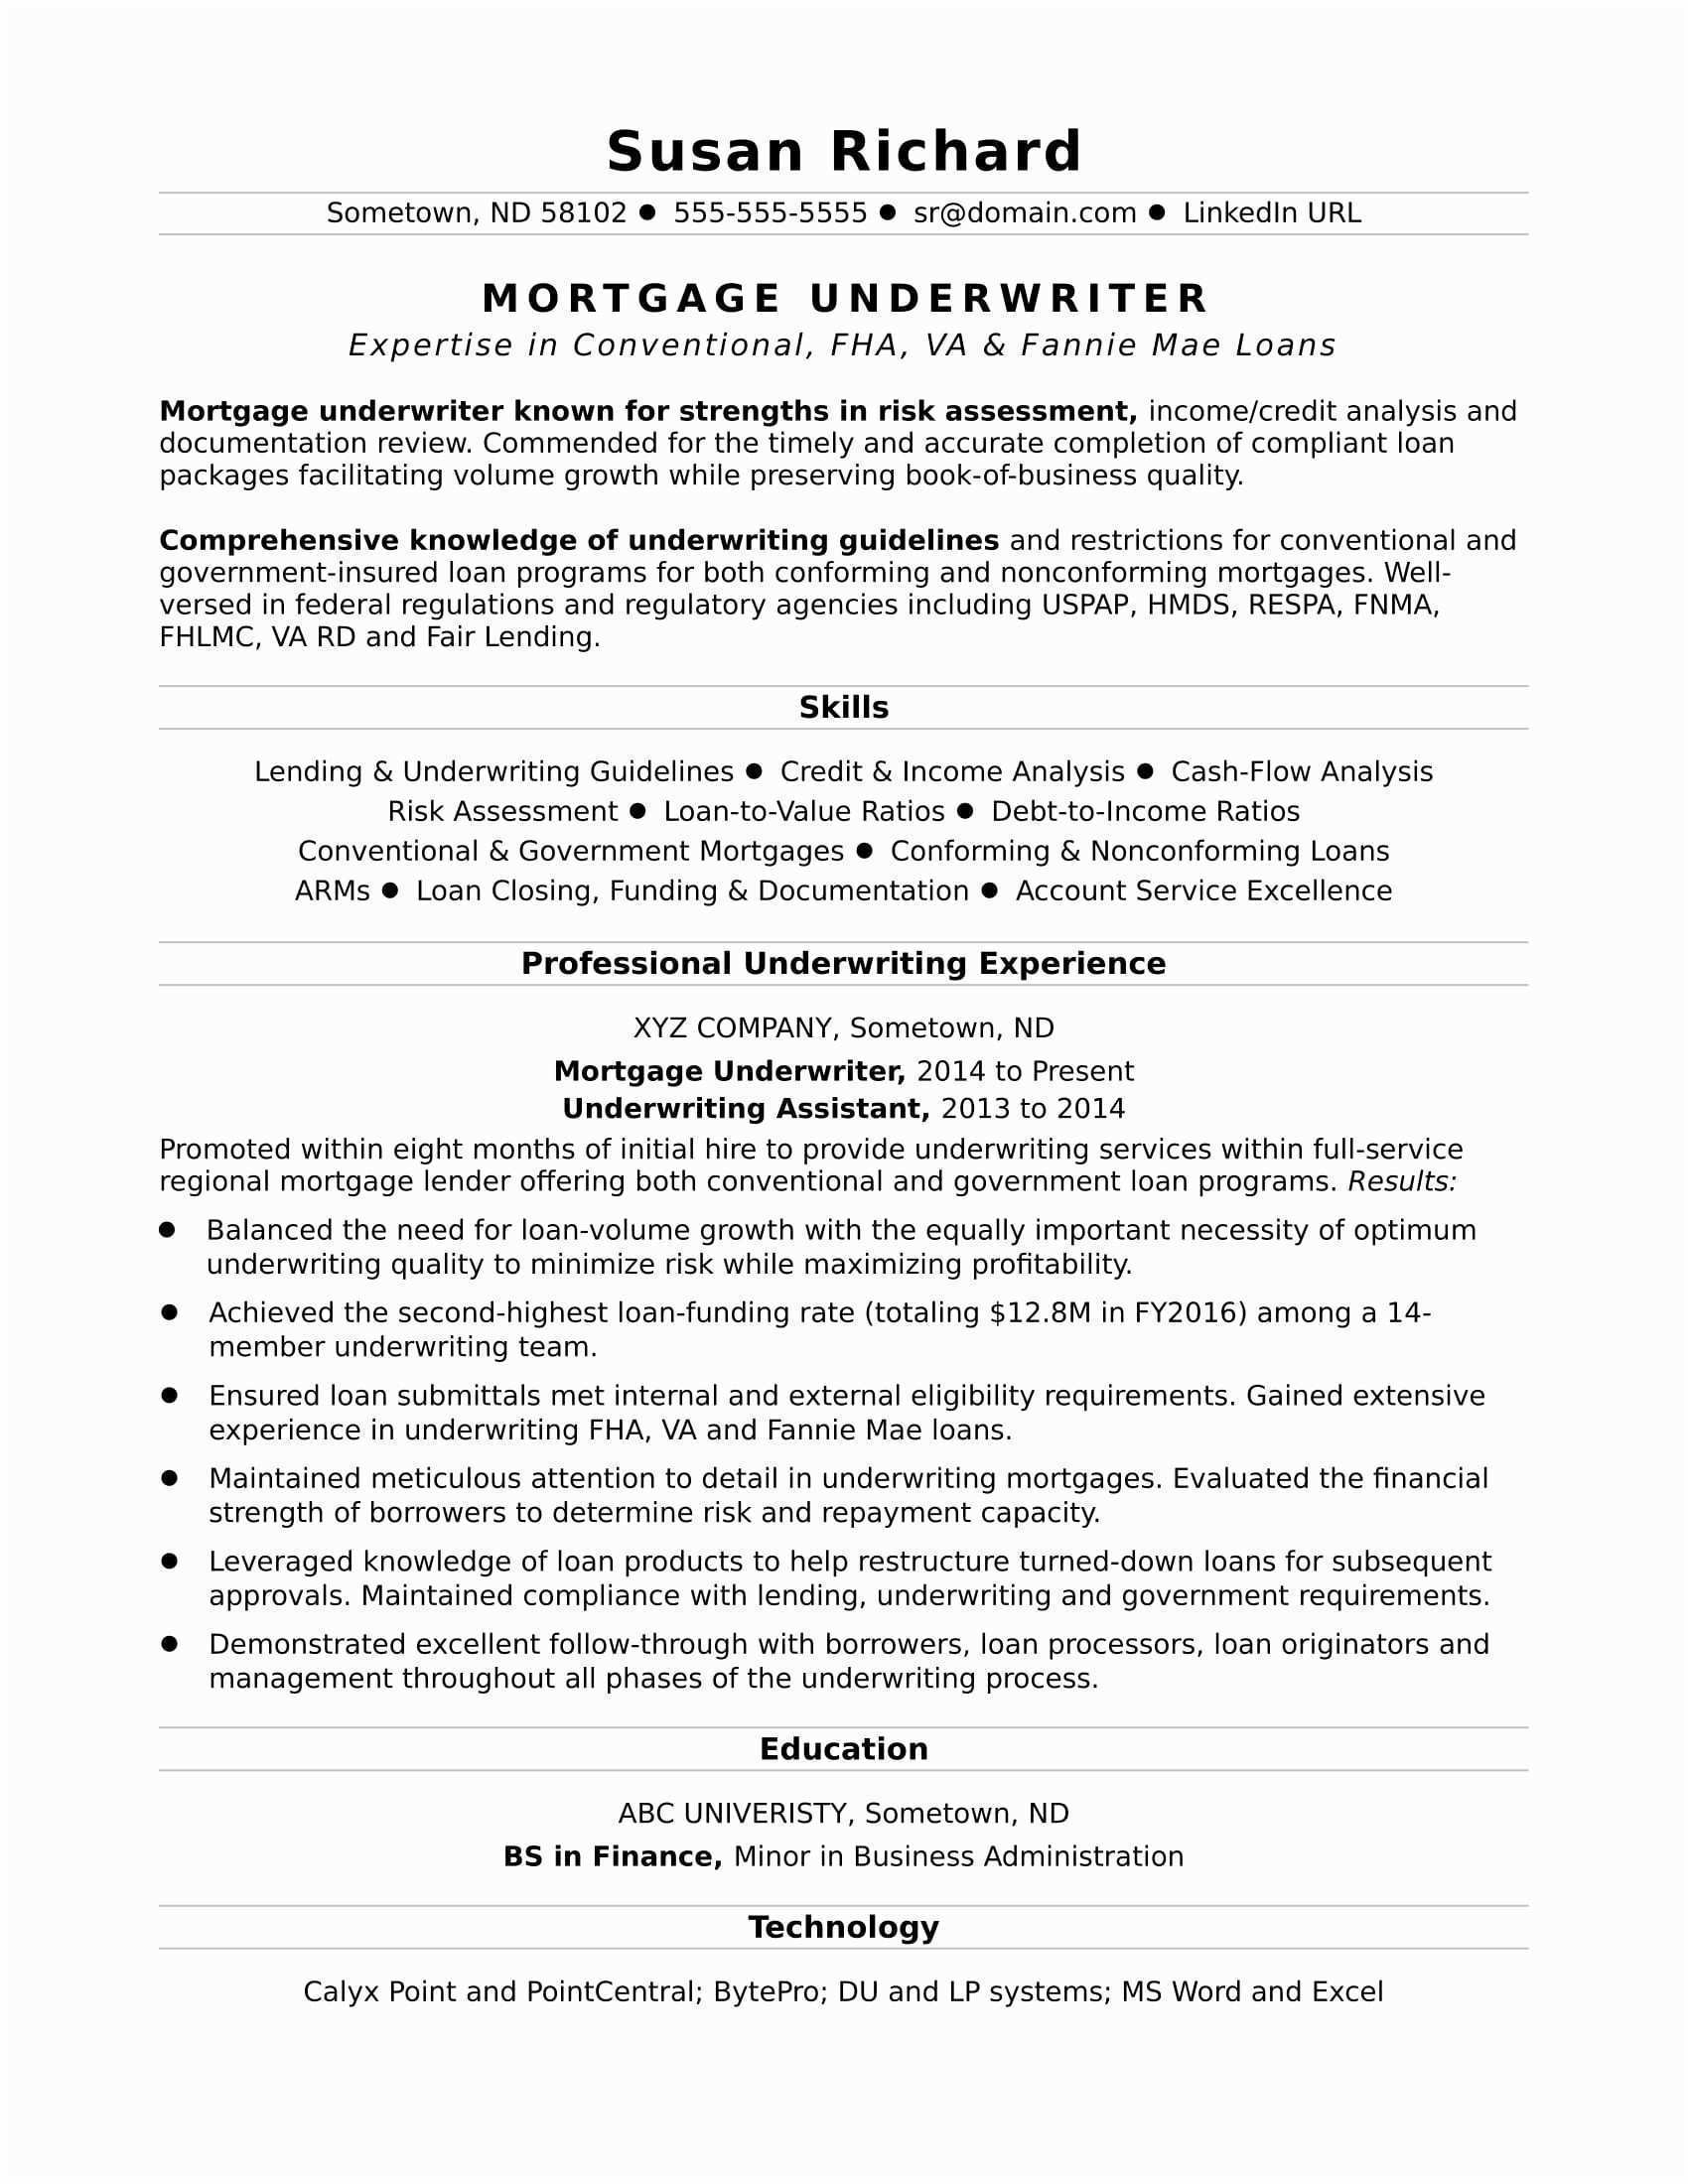 Executive Summary for Resume - 56 New Executive Summary Template